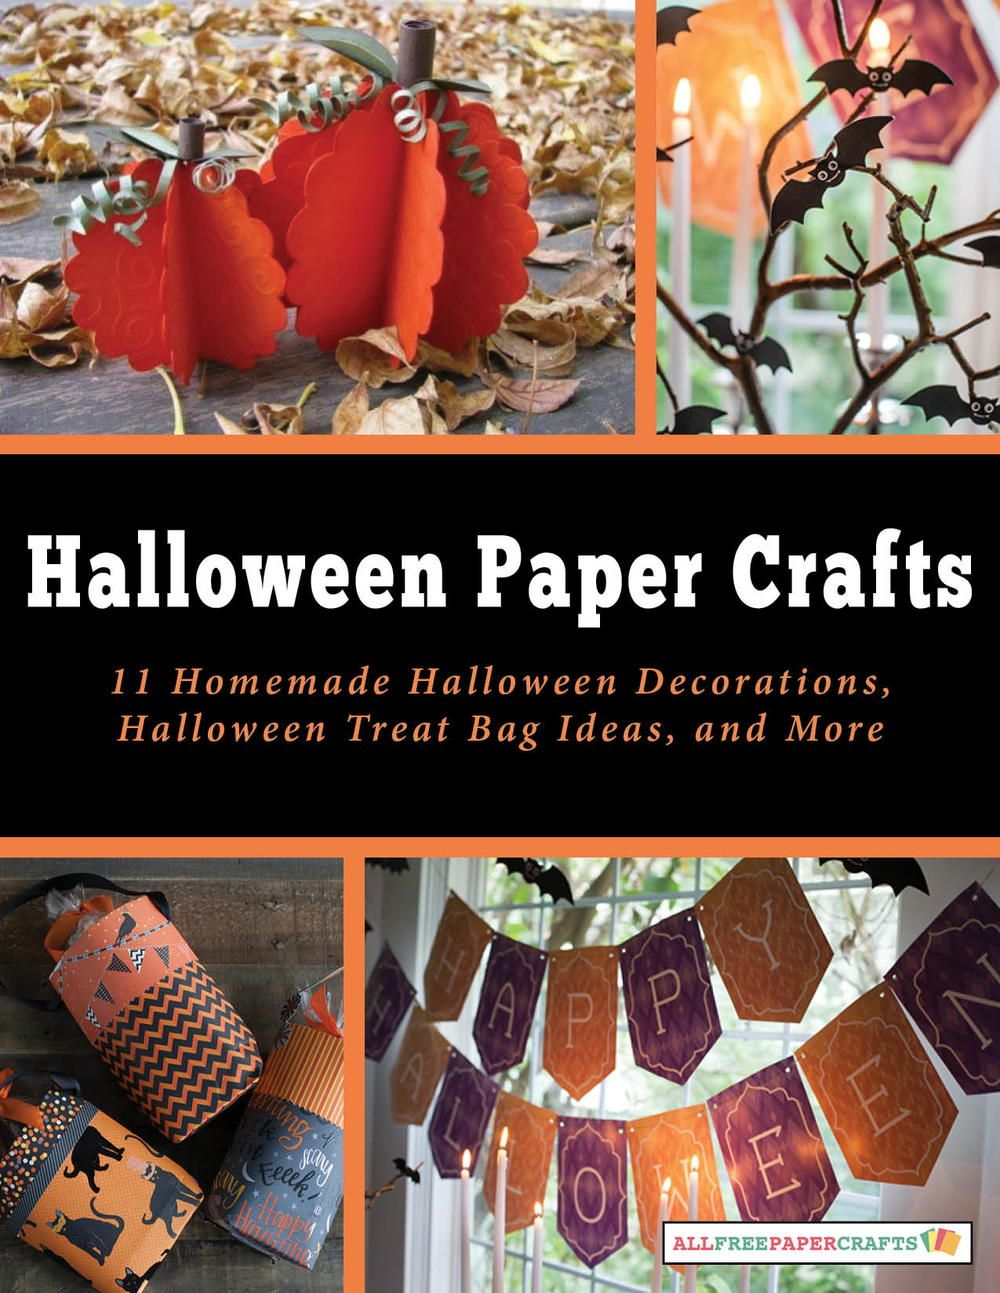 Halloween Paper Crafts 11 Homemade Halloween Decorations, Halloween - Homemade Halloween Decorations